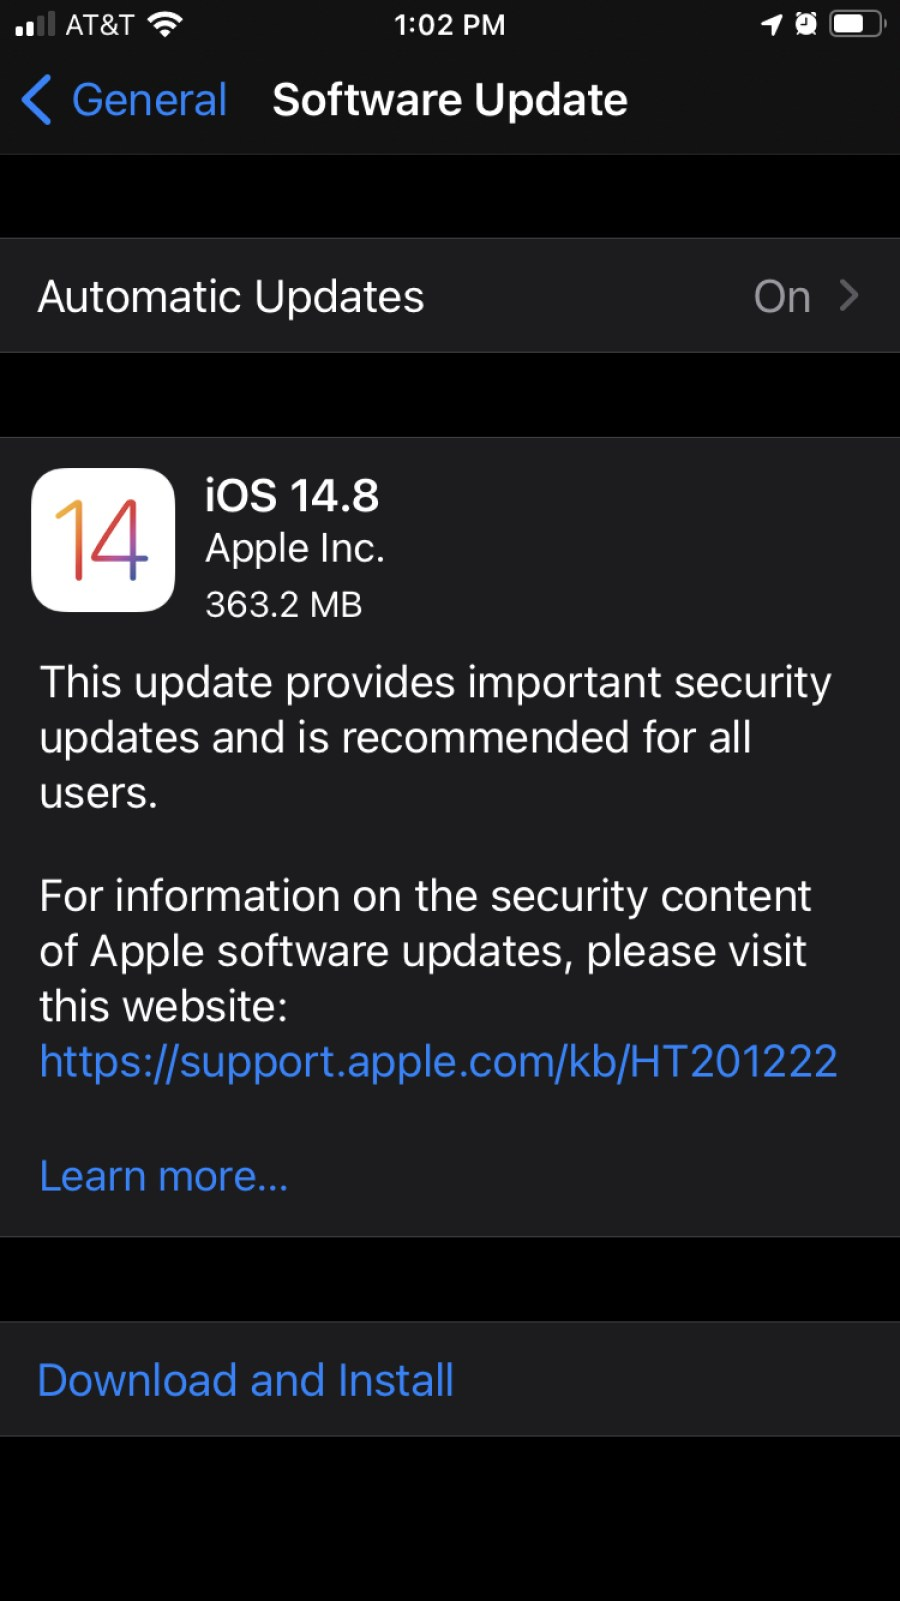 The newest security update for iOS.